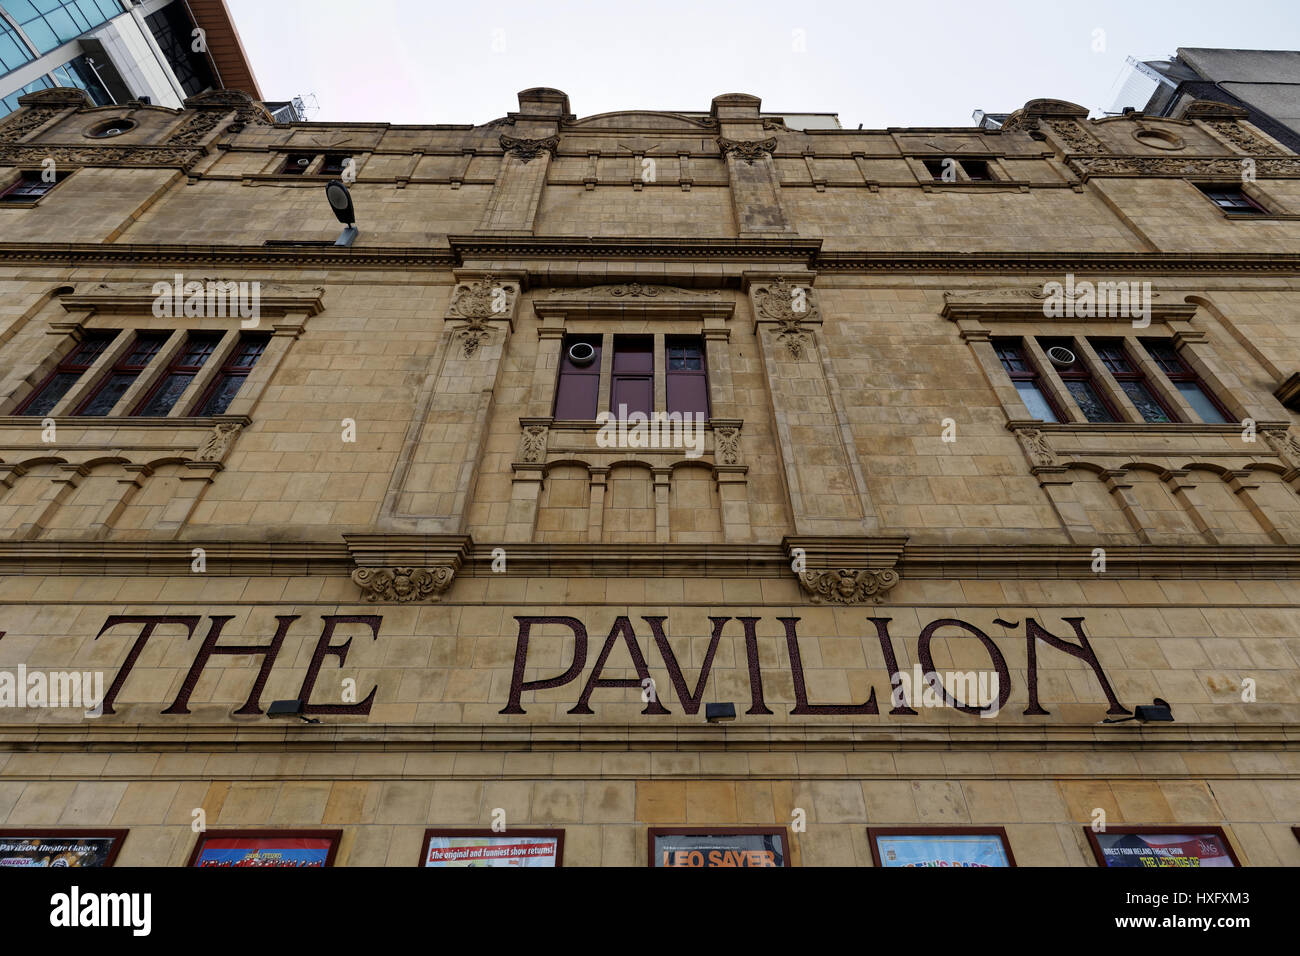 The Pavilion Theatre is a theatre in Glasgow located on Renfield Street. - Stock Image